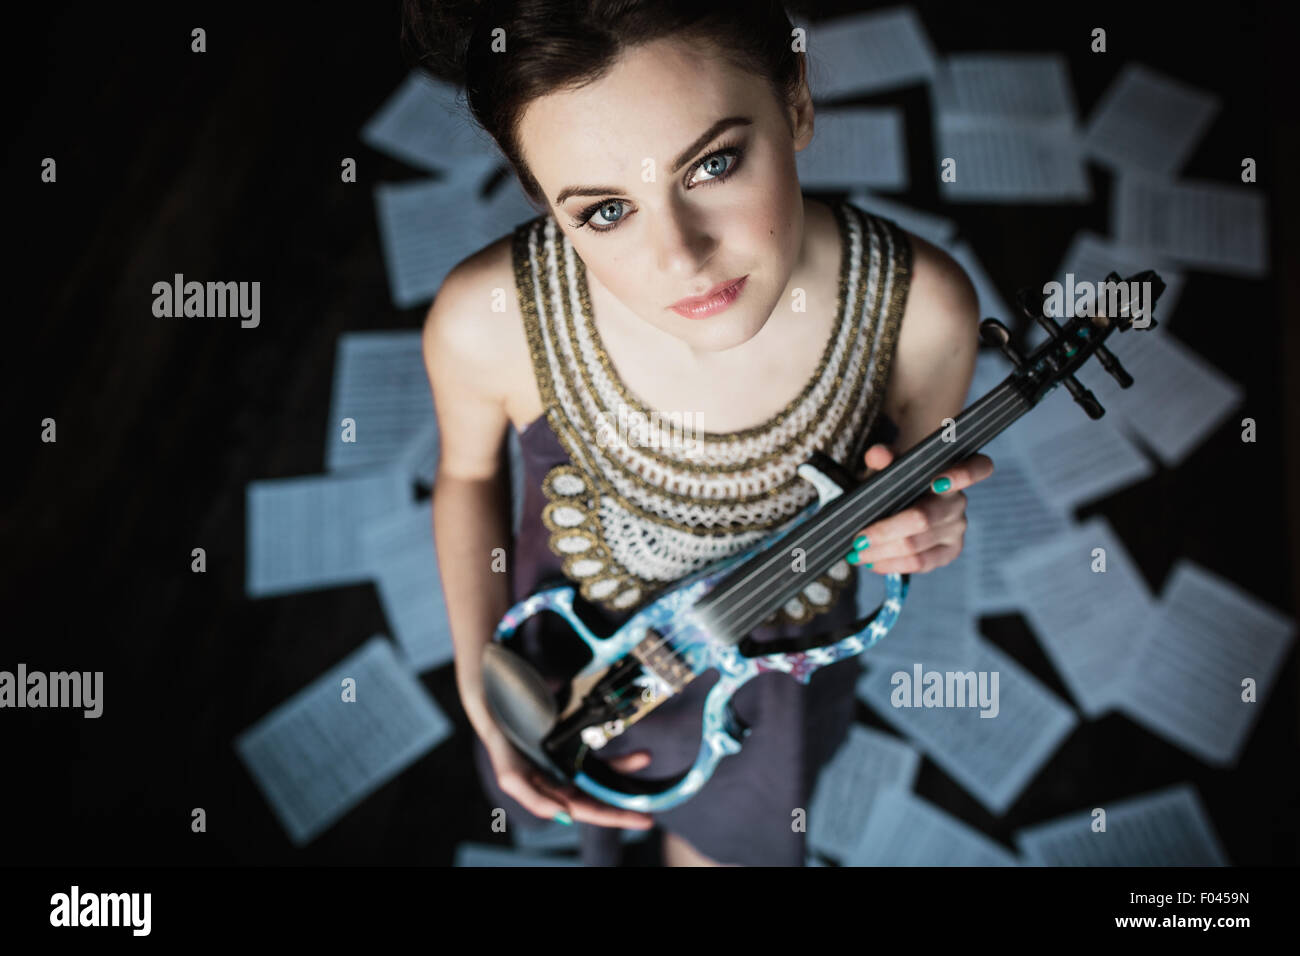 girl posing and holding a violin - Stock Image